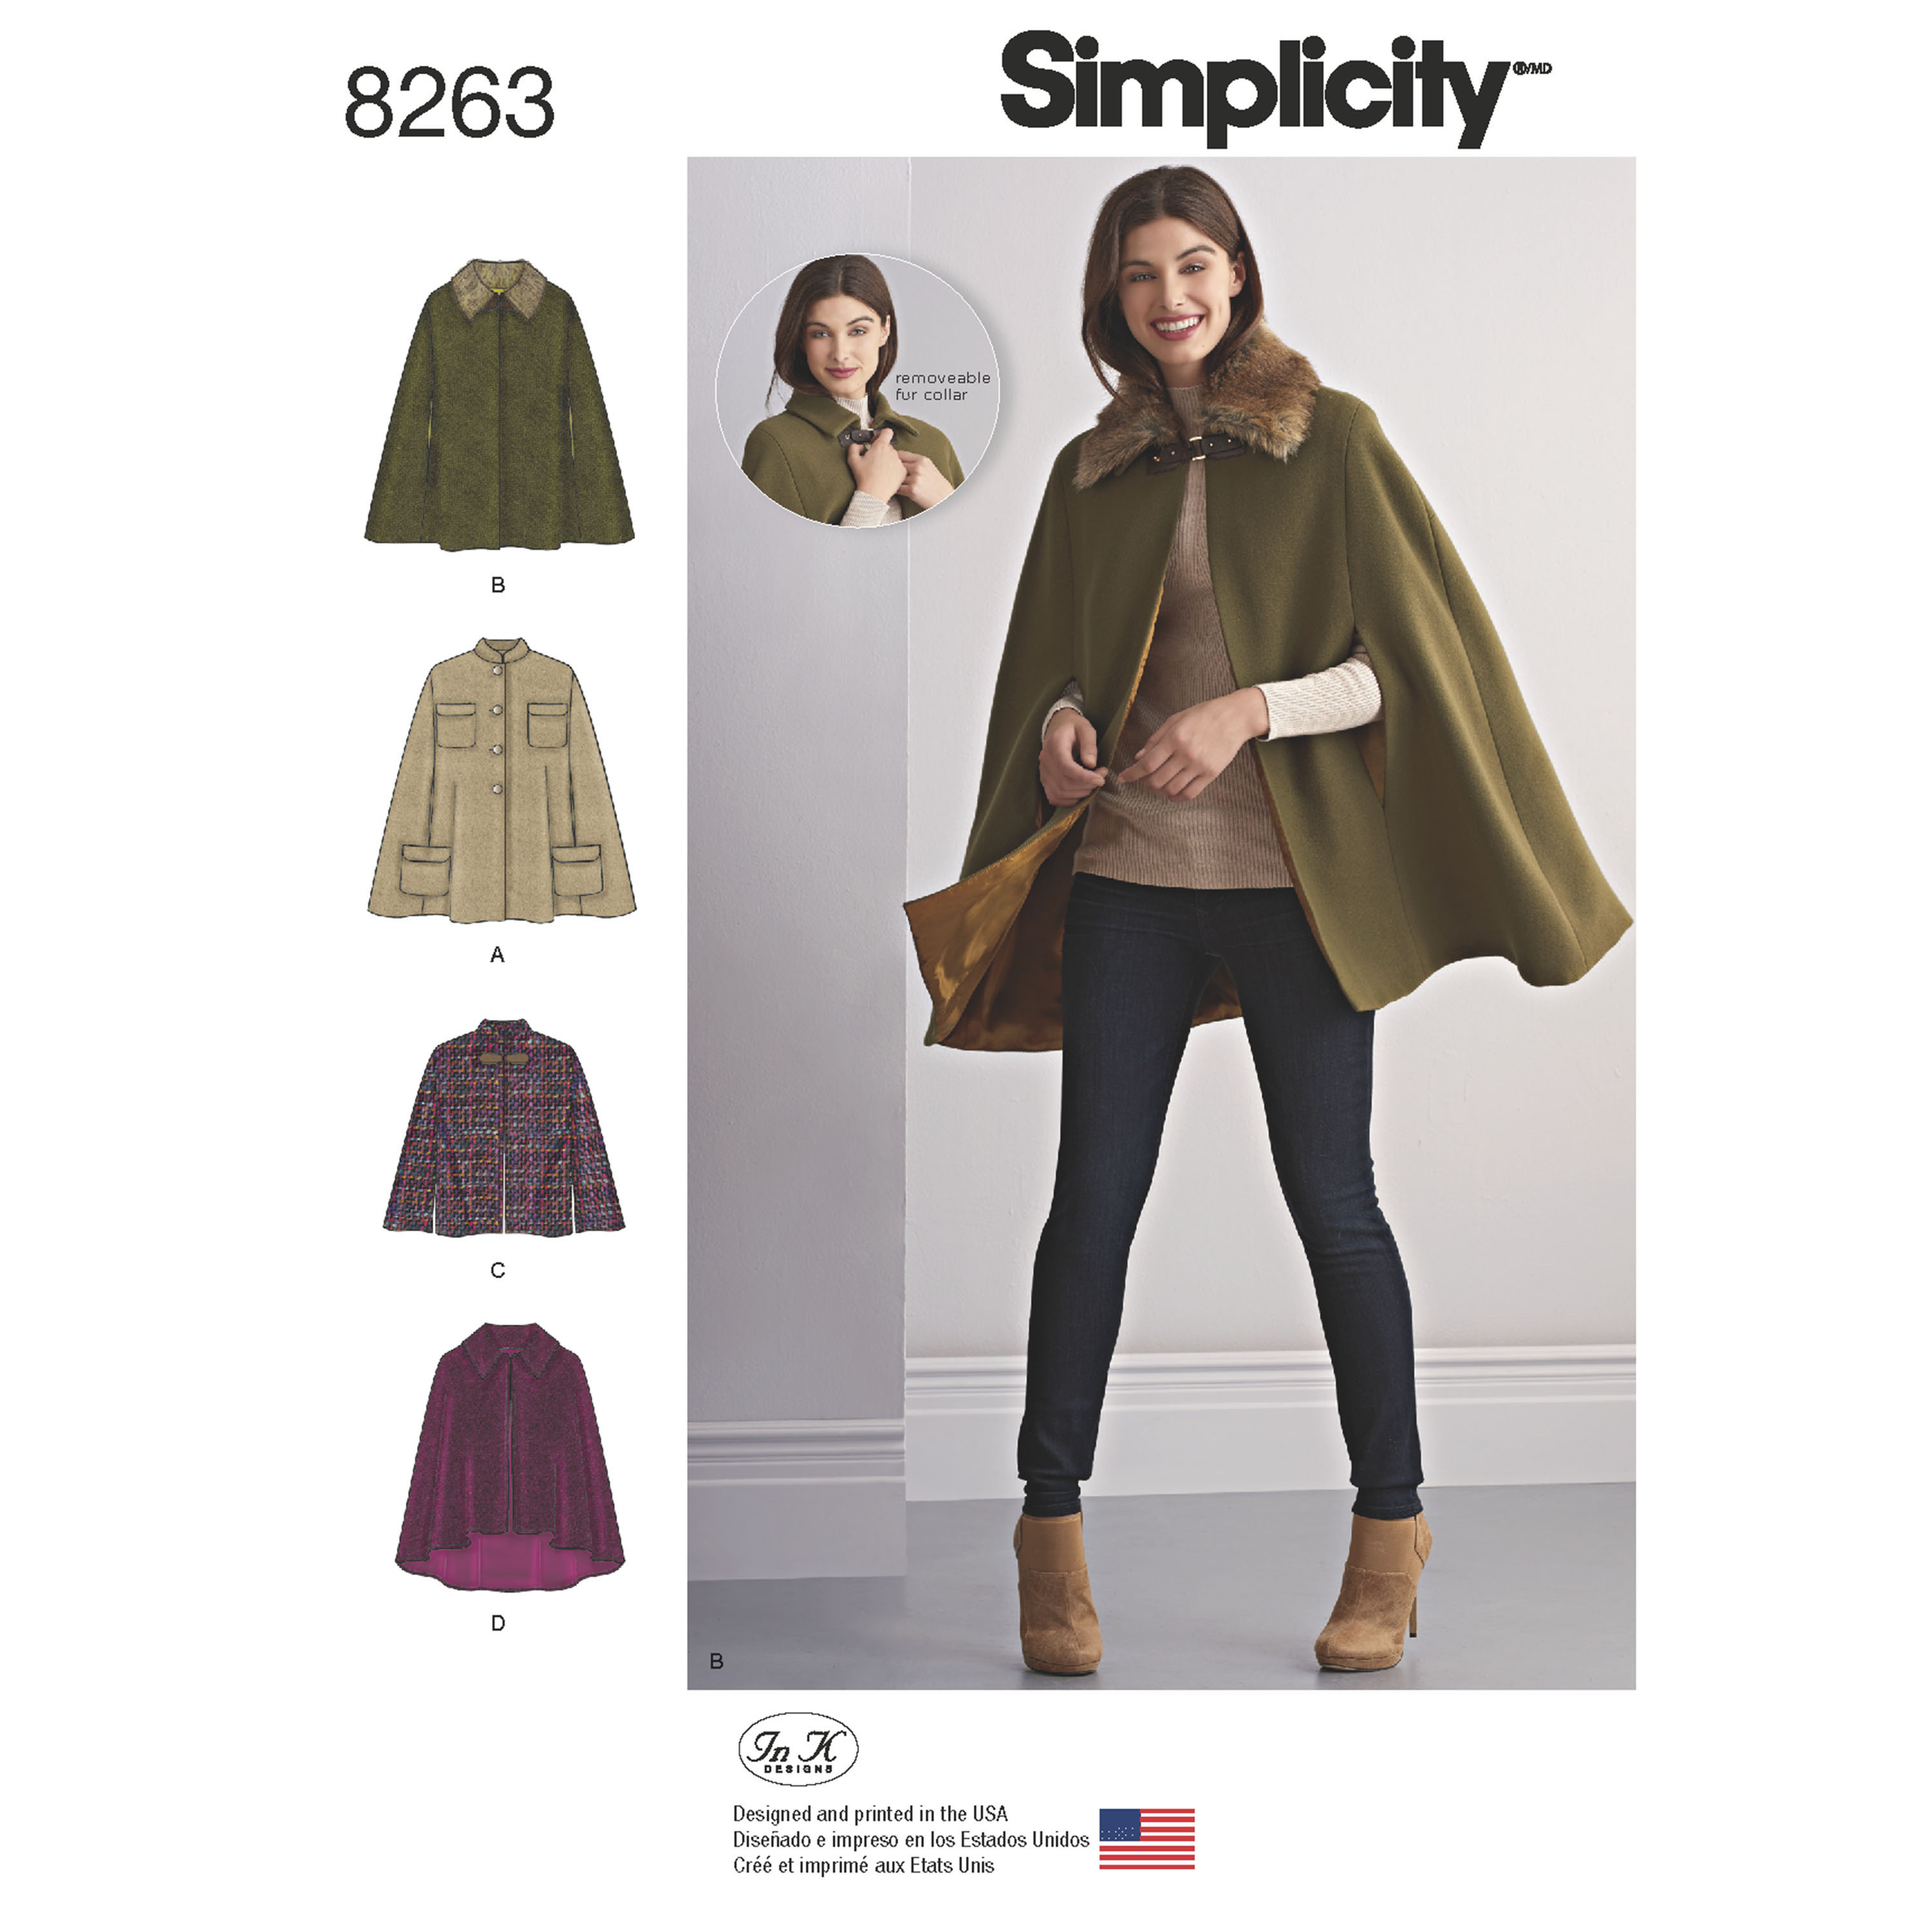 Simplicity Simplicity Pattern 8263 Misses' Capes and Capelets